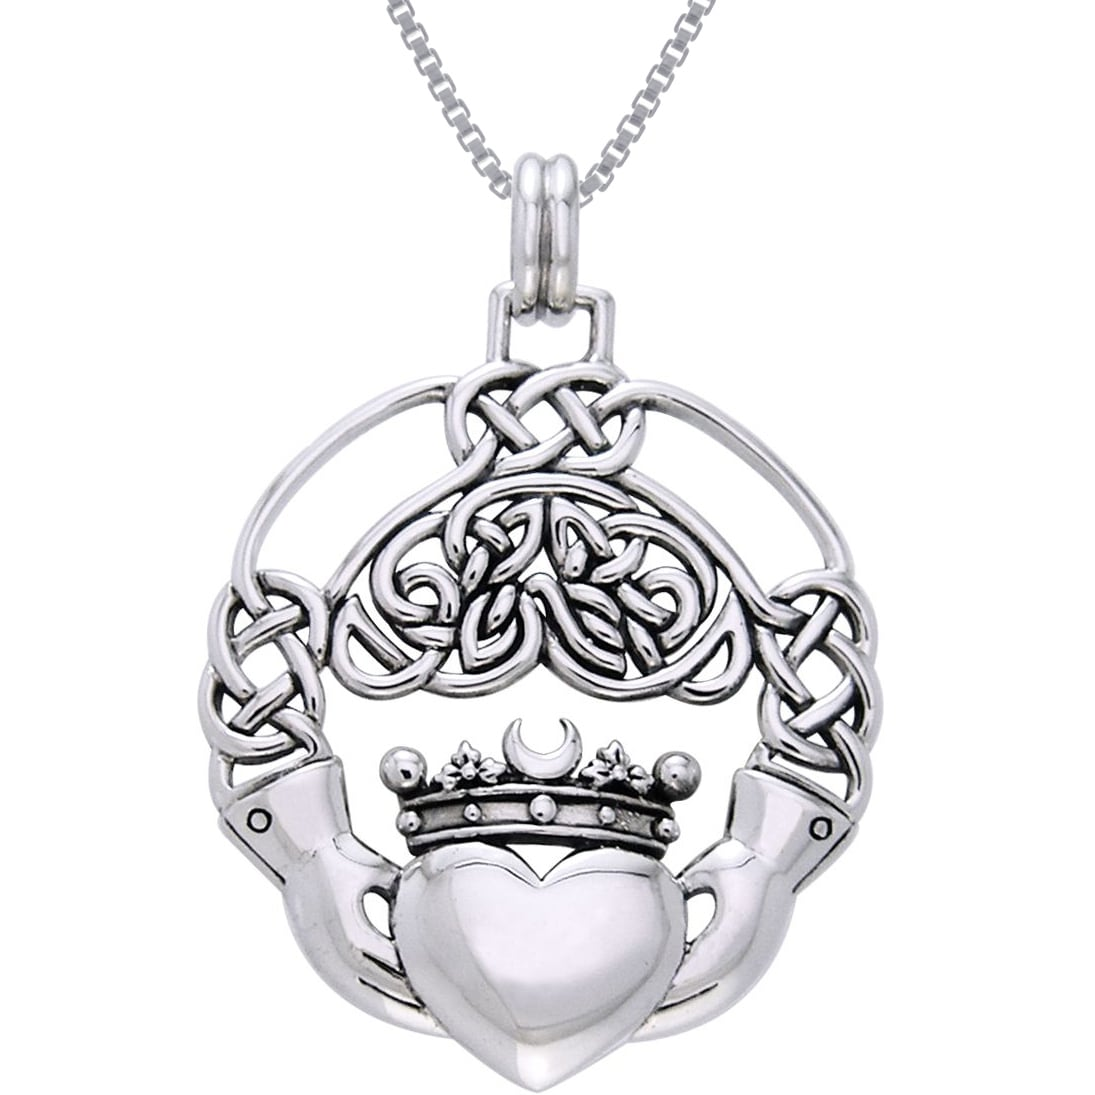 pendant marble htm p ls chain necklace silver connemara claddagh w